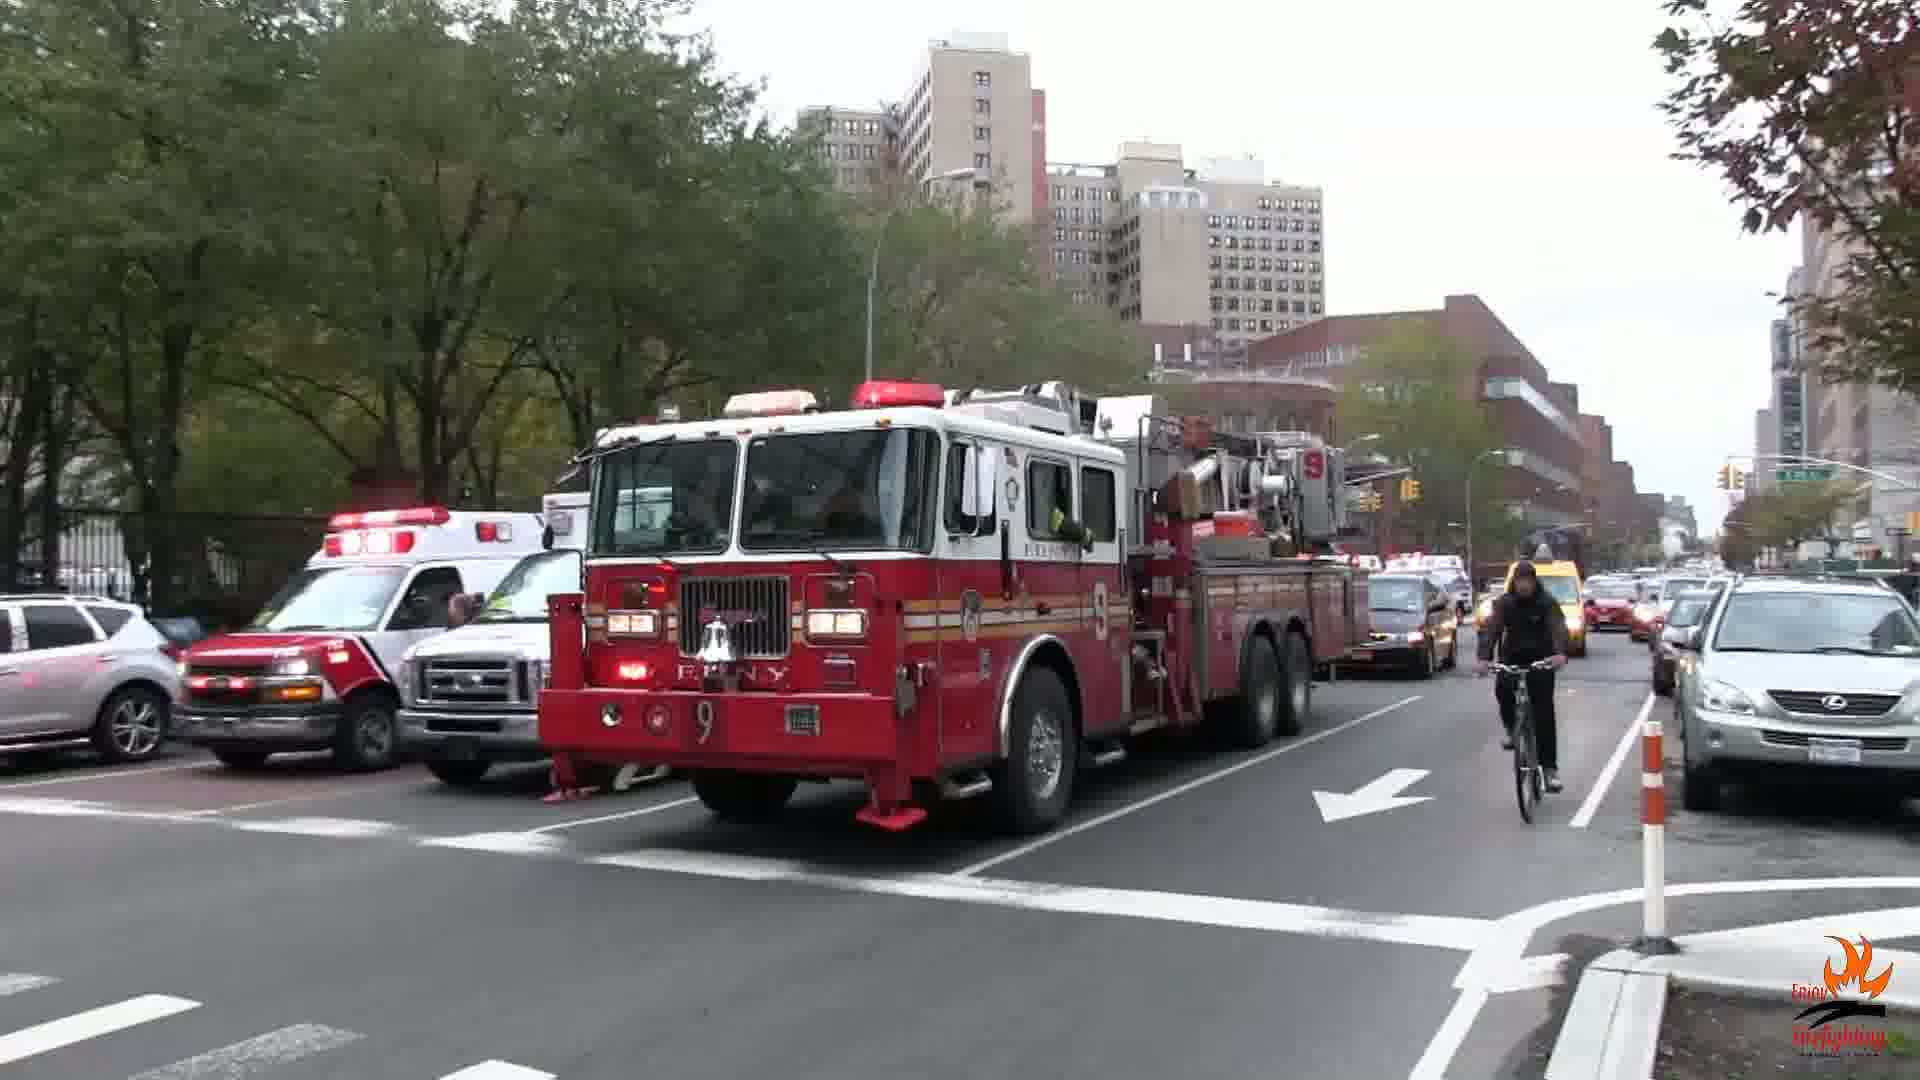 Tower Ladder 9 + Engine 21 + Battalion 8 FDNY + Police Van NYPD